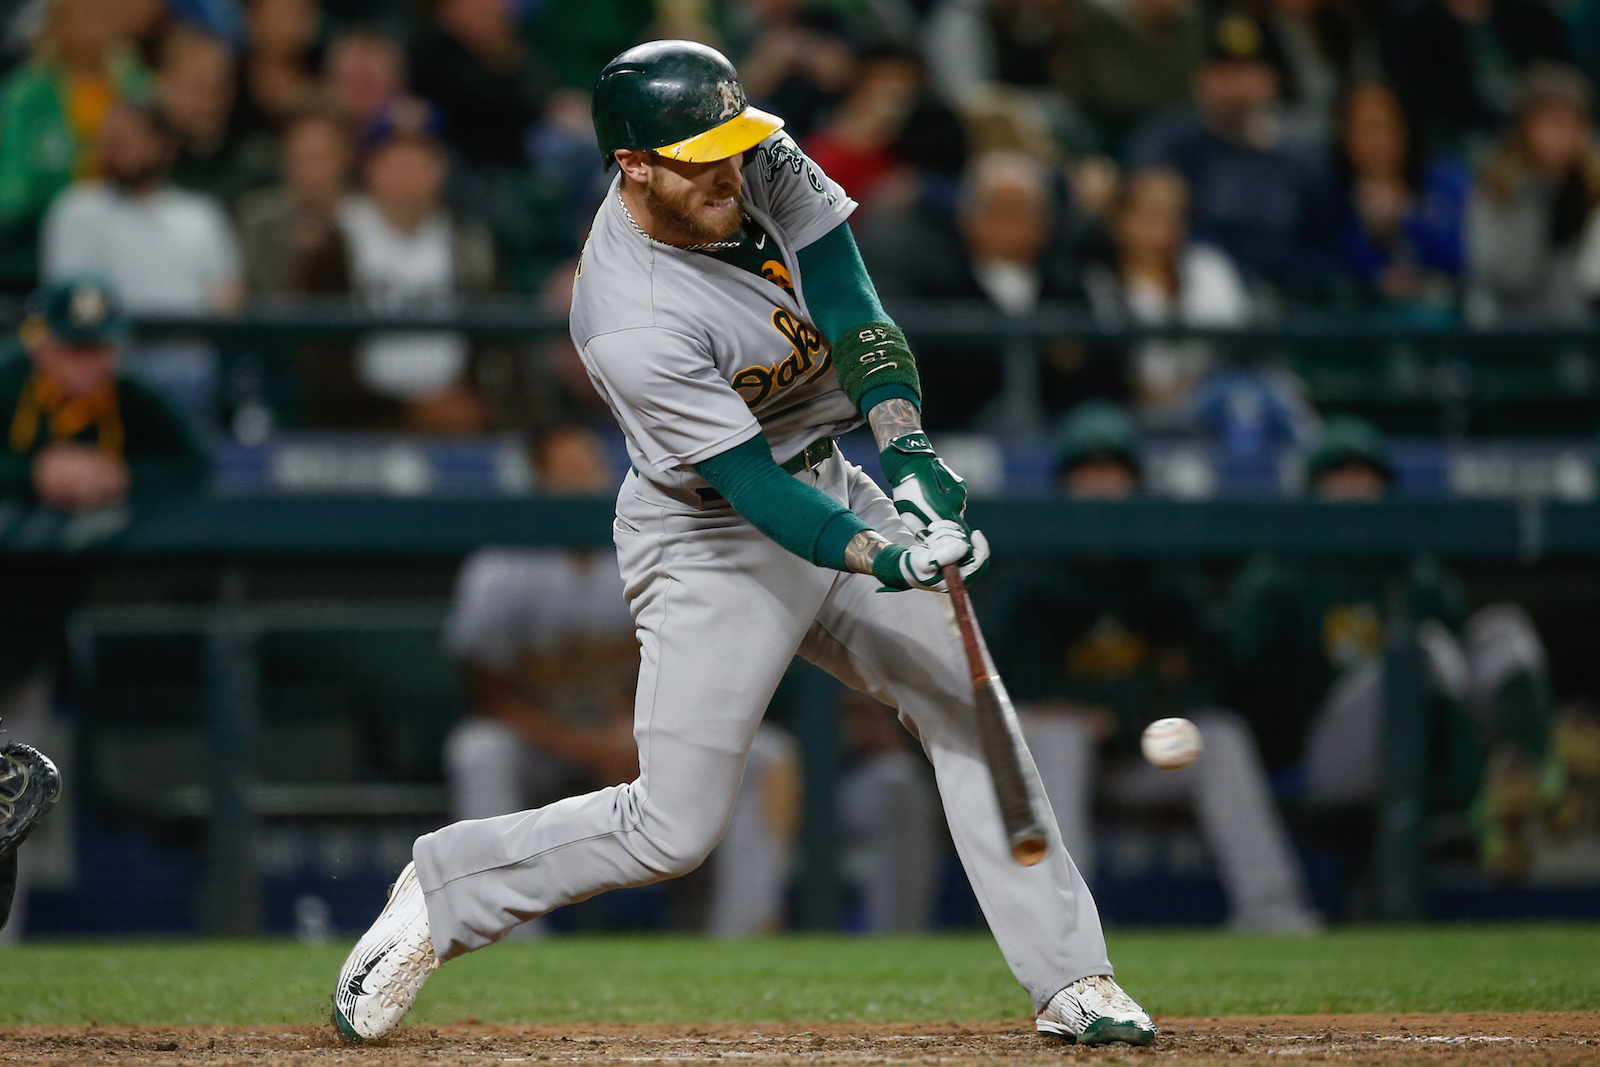 Winter Meetings: Lawrie dealt to White Sox, Axford signs with A's